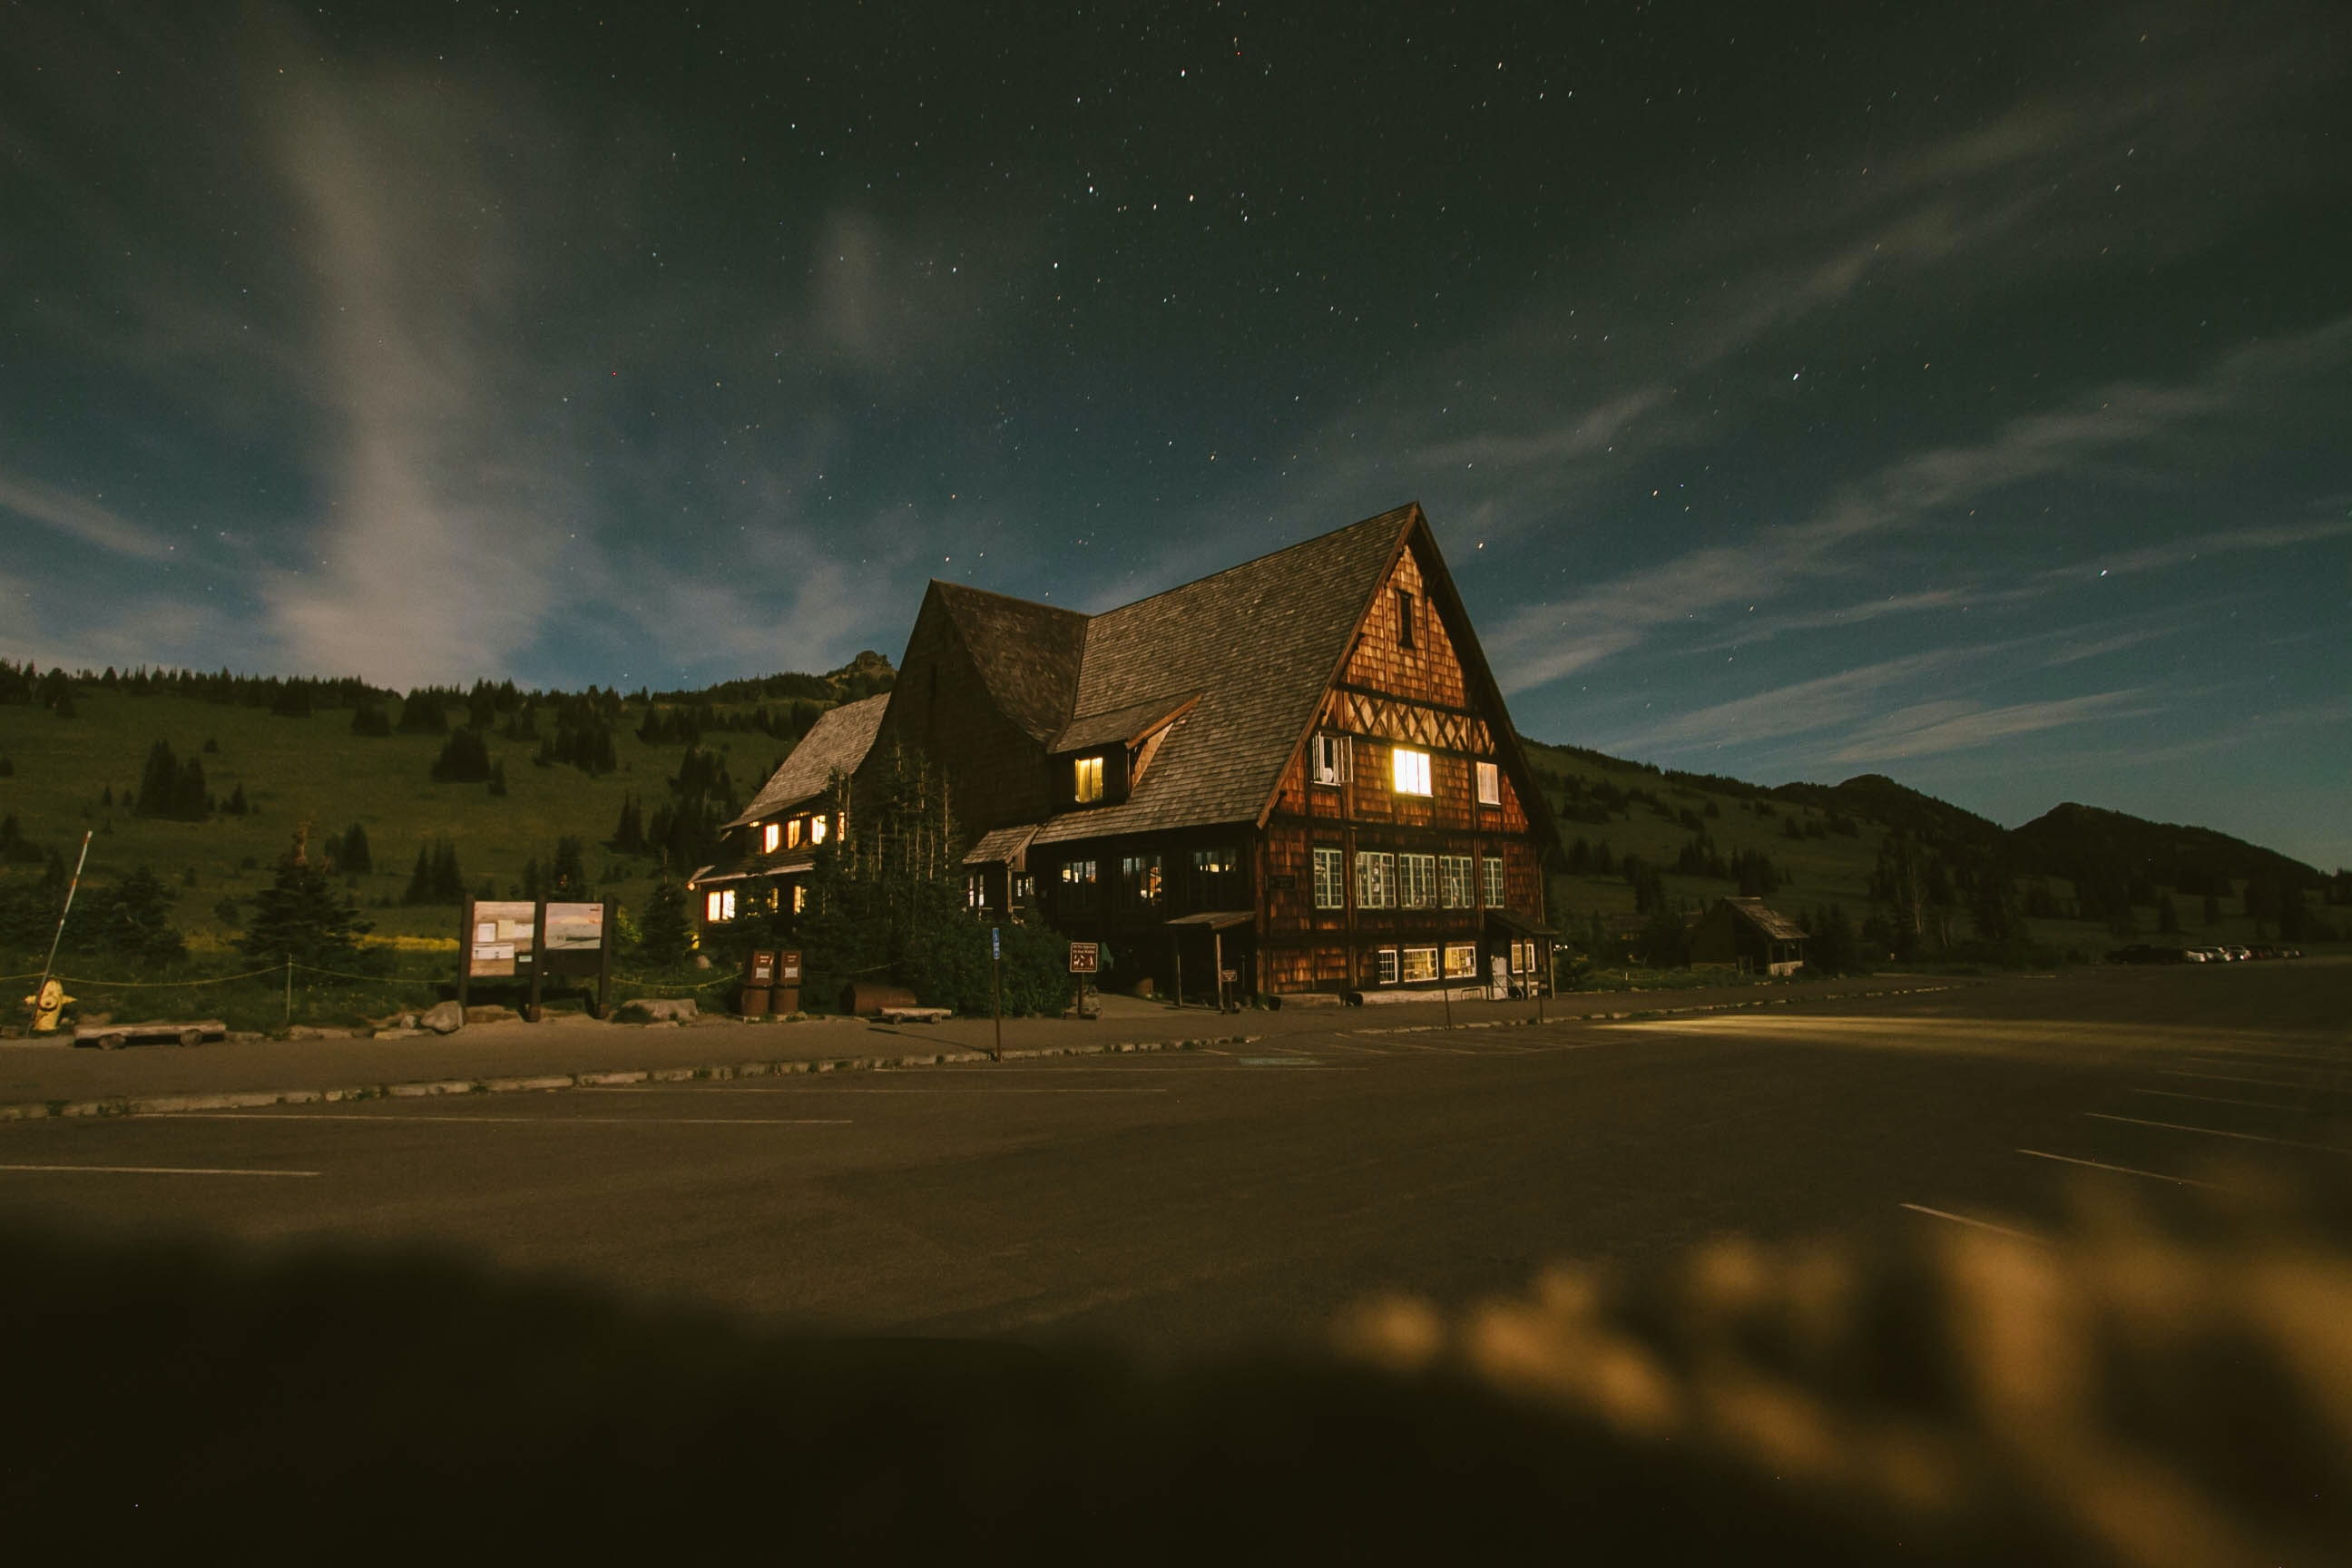 Large cabin-like house lit up from the inside at dusk in a field with mountains in the background